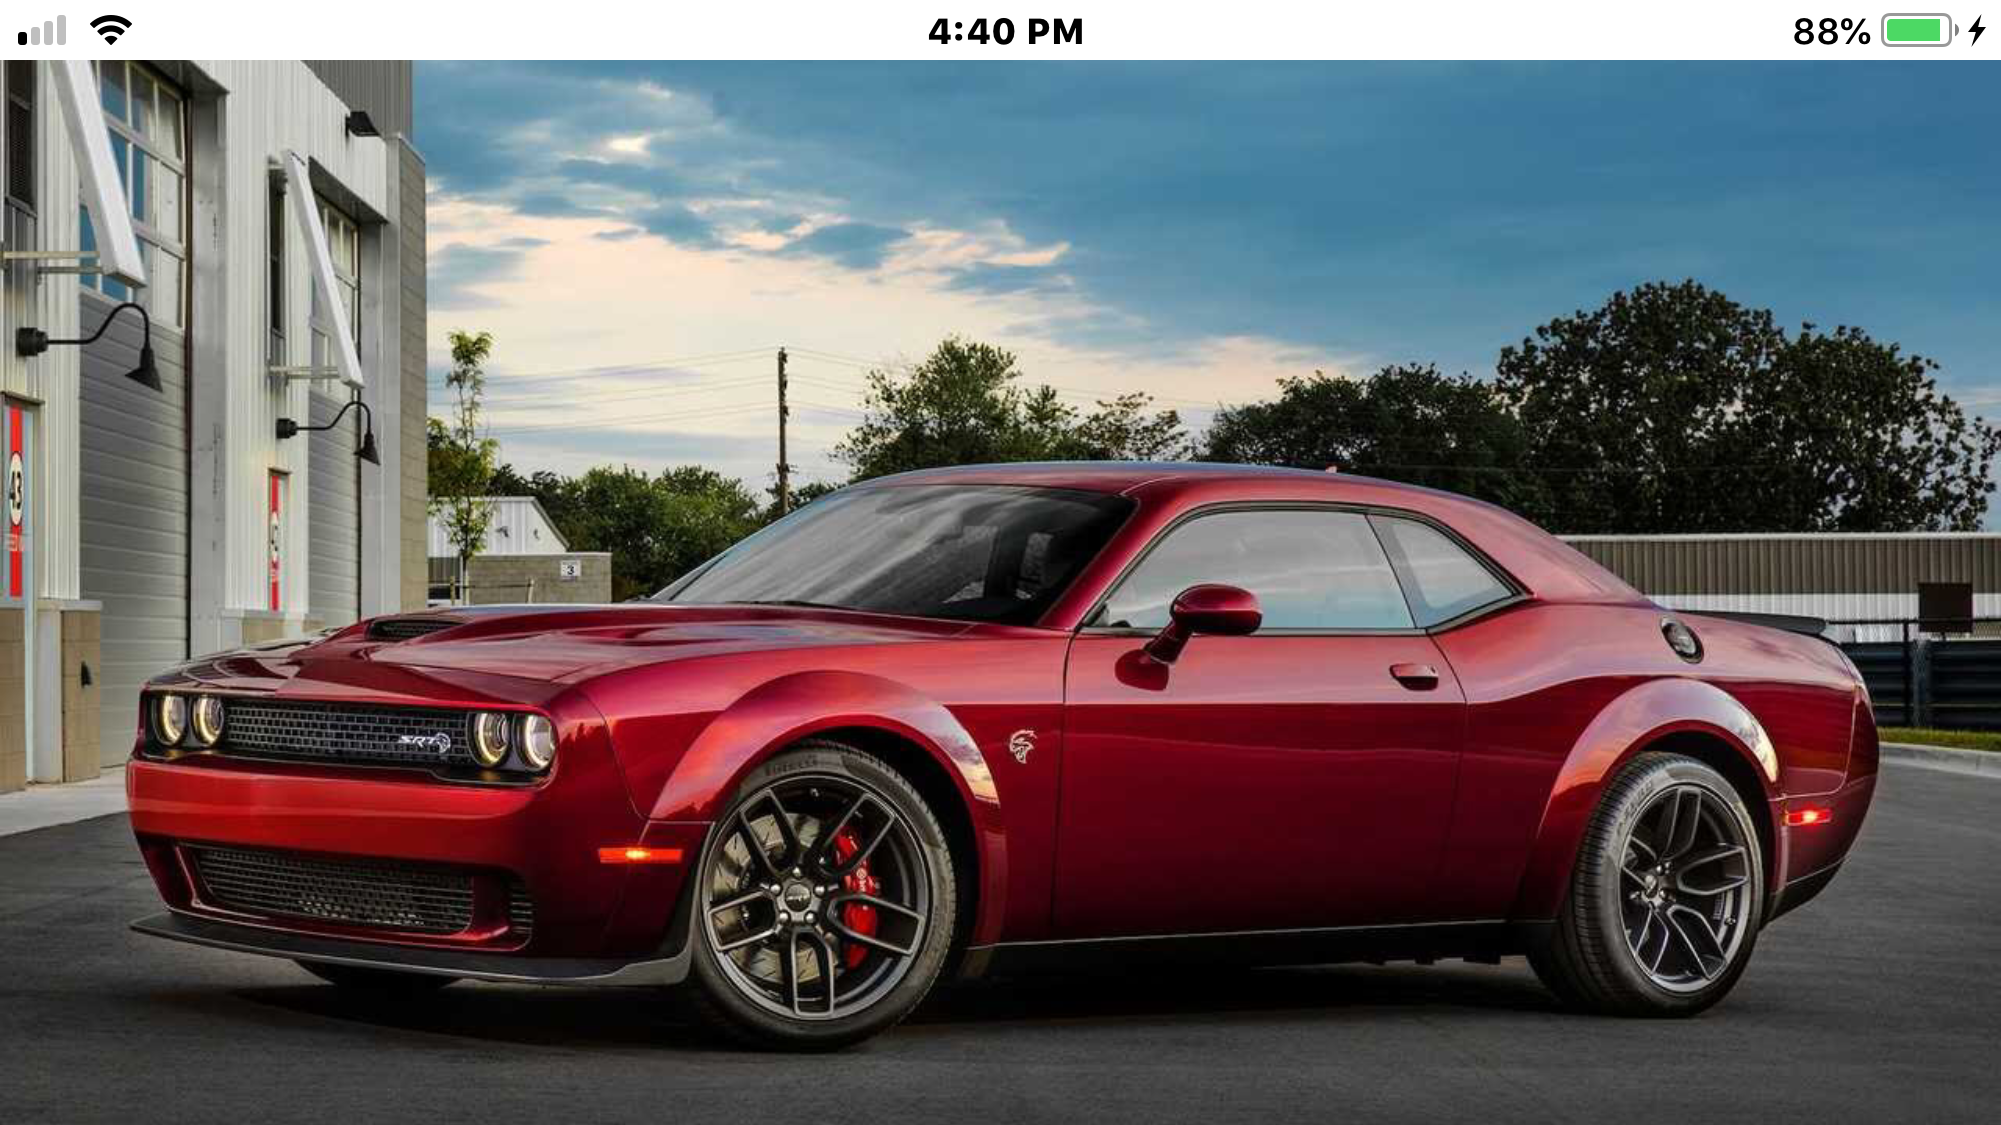 Pin By Debbie Mcqueen On I Would Really Love To Have 2018 Dodge Challenger Srt Dodge Challenger Challenger Srt Hellcat